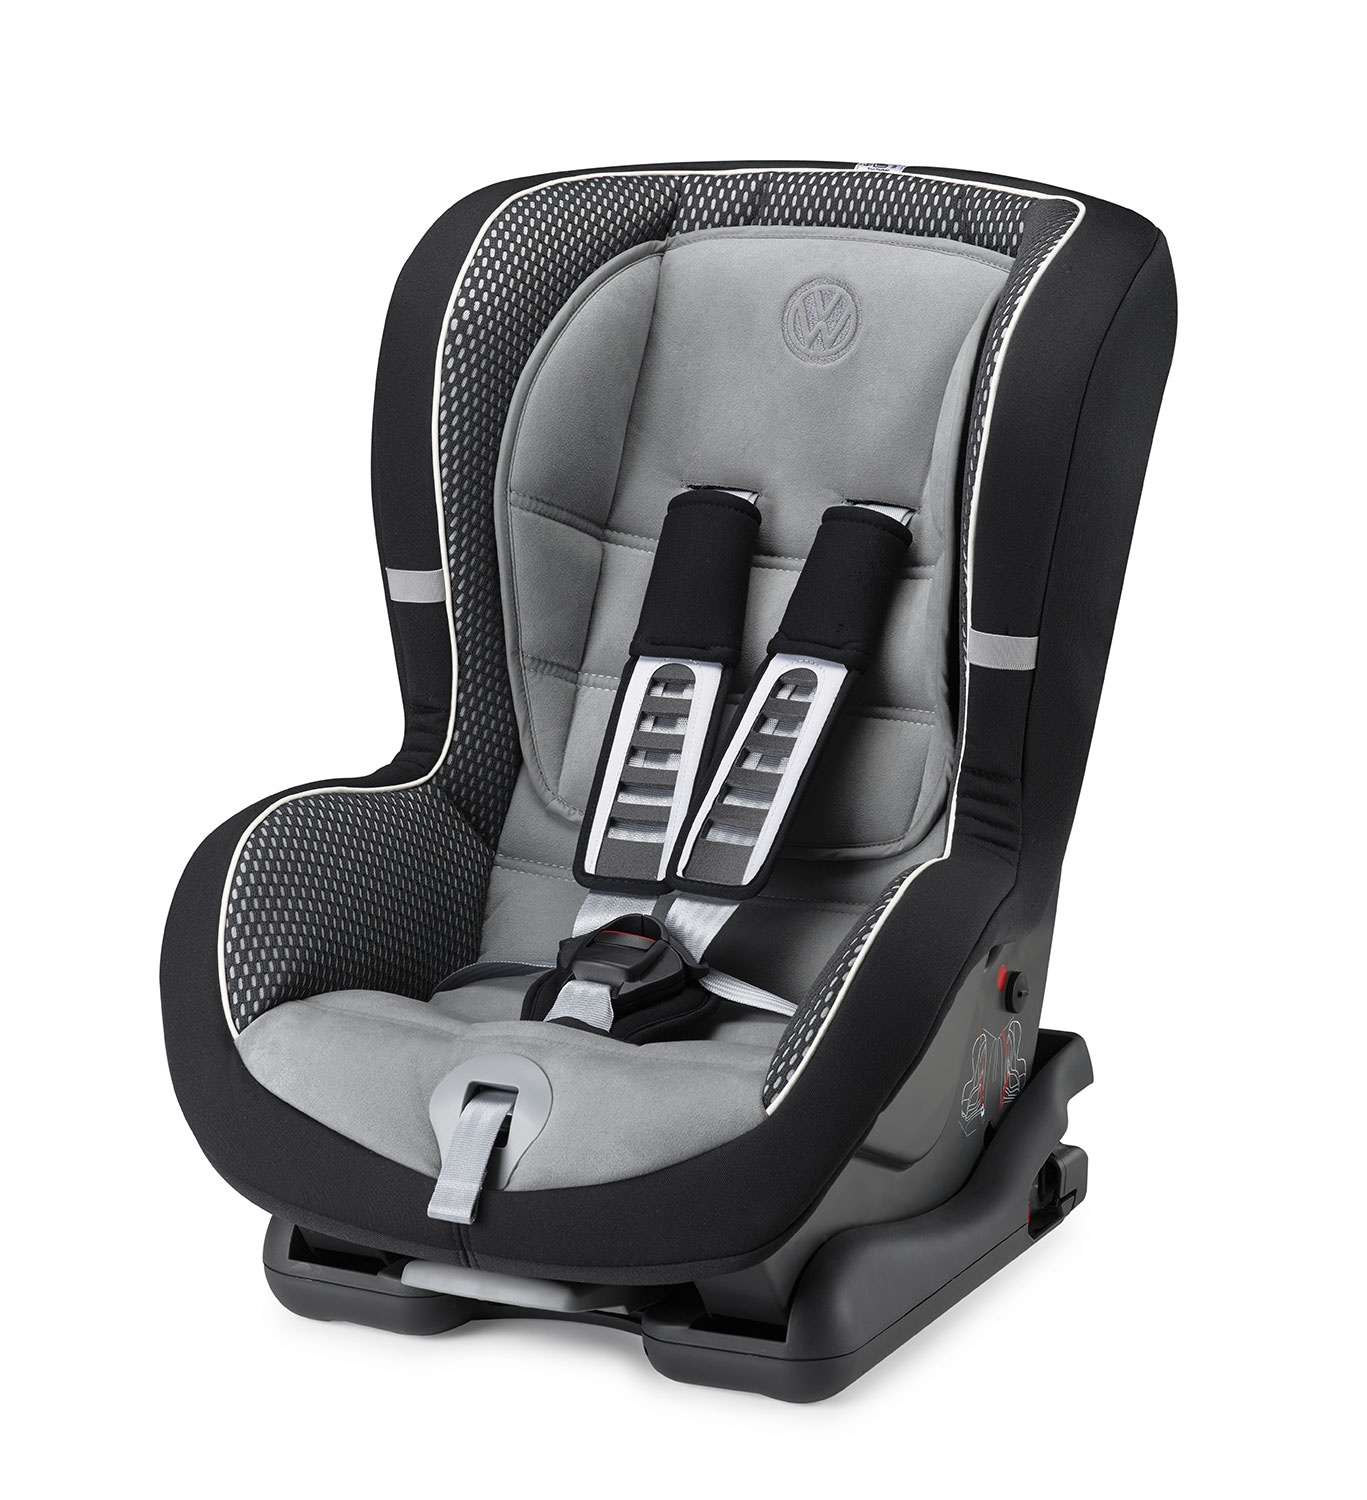 Asiento infantil G1 ISOFIX DUO plus Top Tether